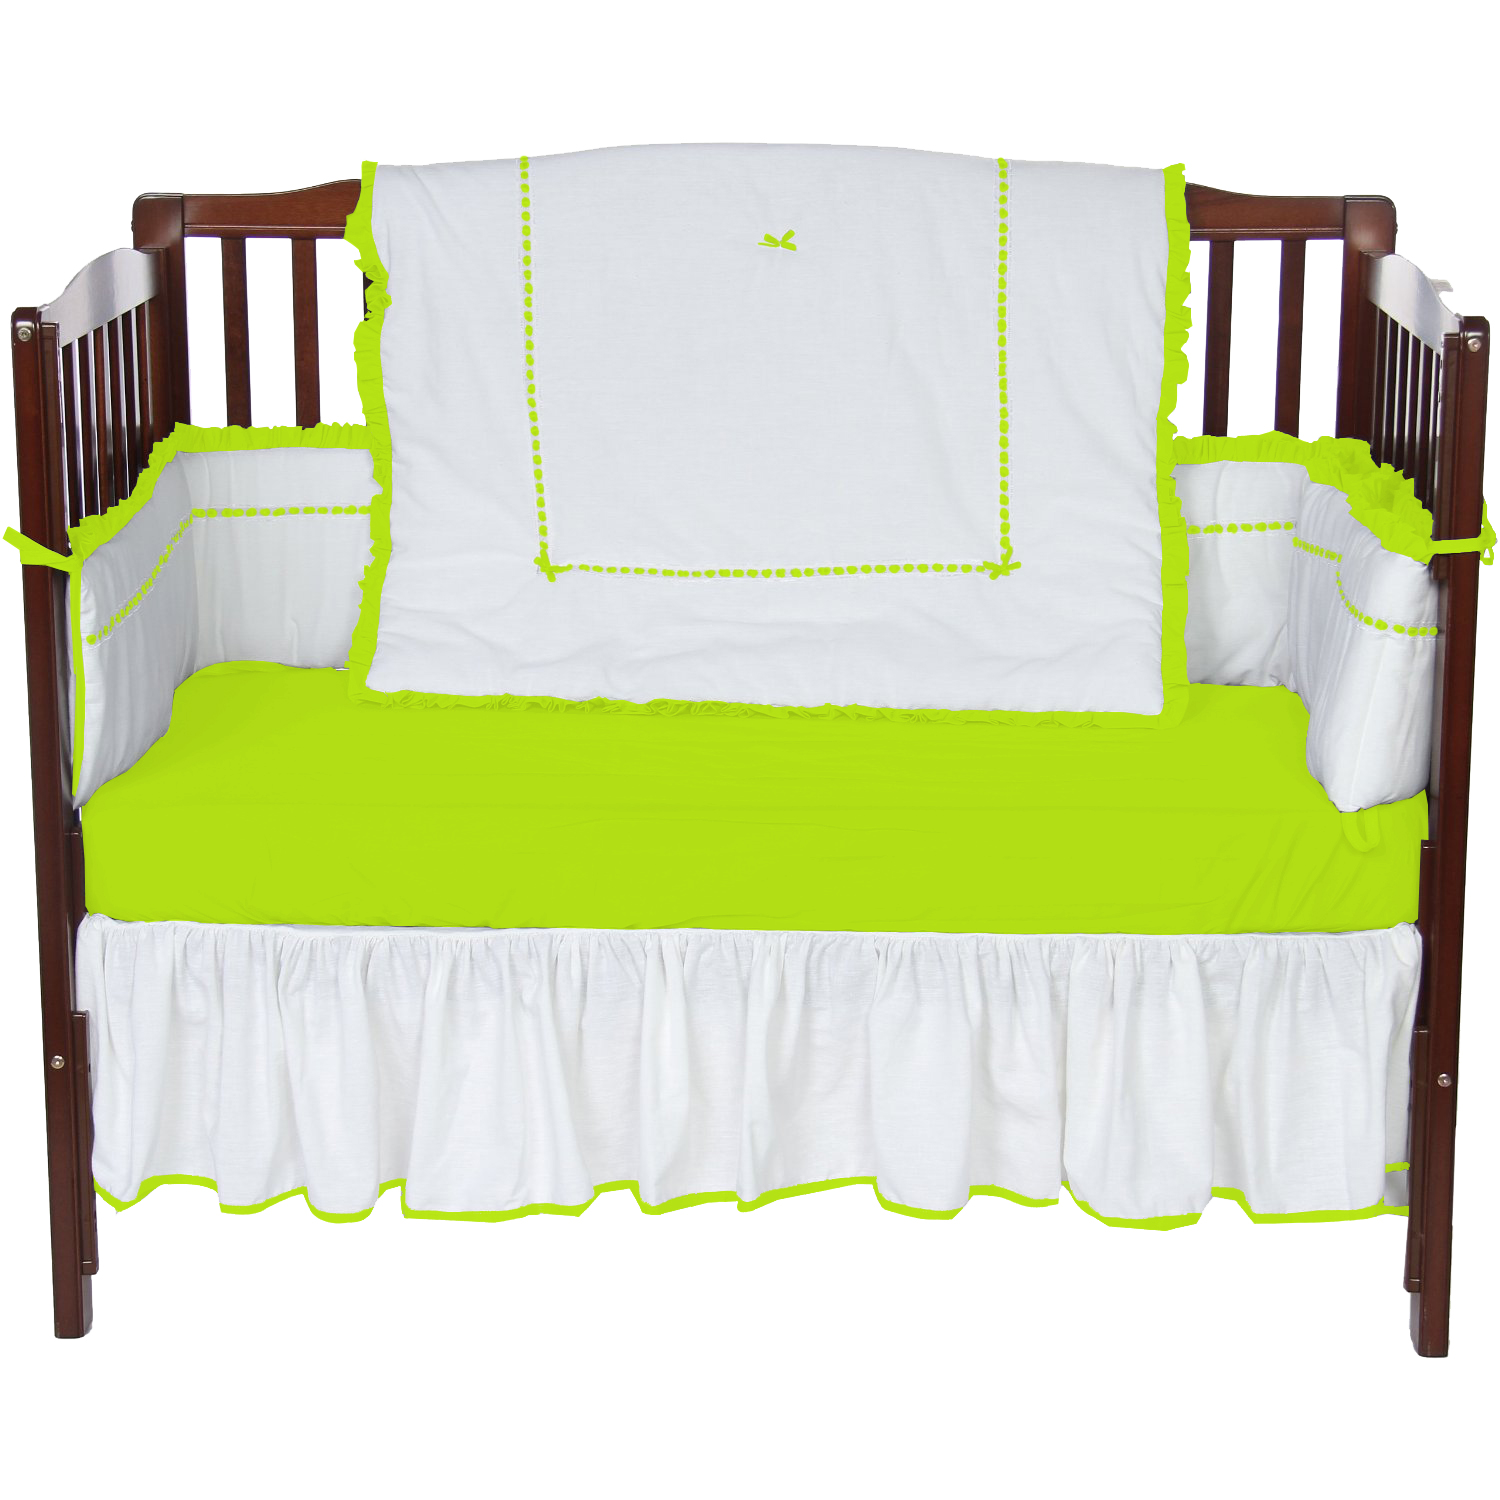 Baby Doll Bedding Unique 4 Piece Crib Bedding Set in Green Apple by Baby Doll Bedding